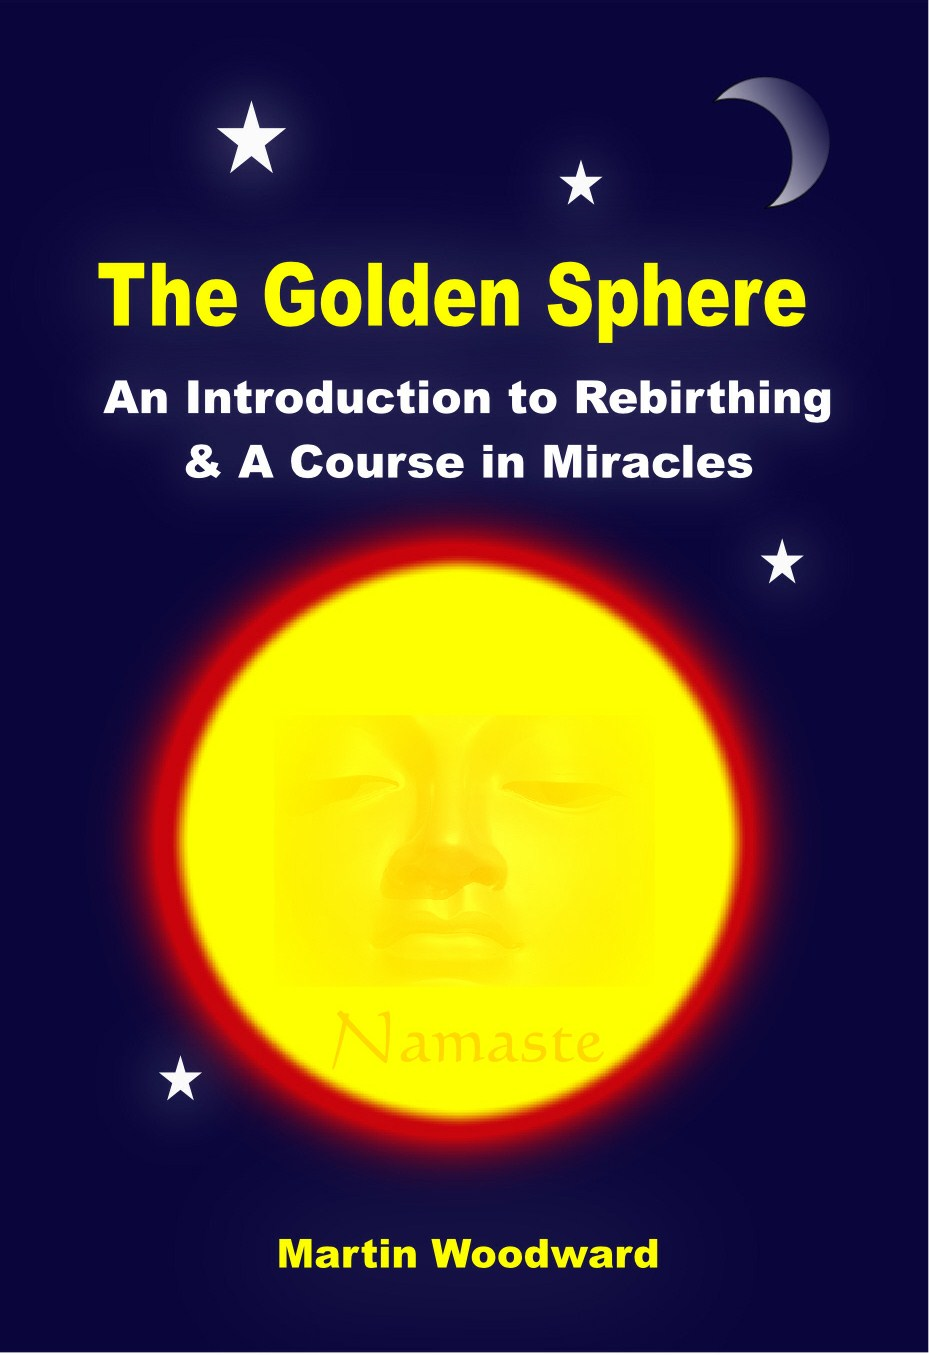 The Golden Sphere - An Introduction to Rebirthing (Breathwork) and A Course in Miracles By: Martin Woodward